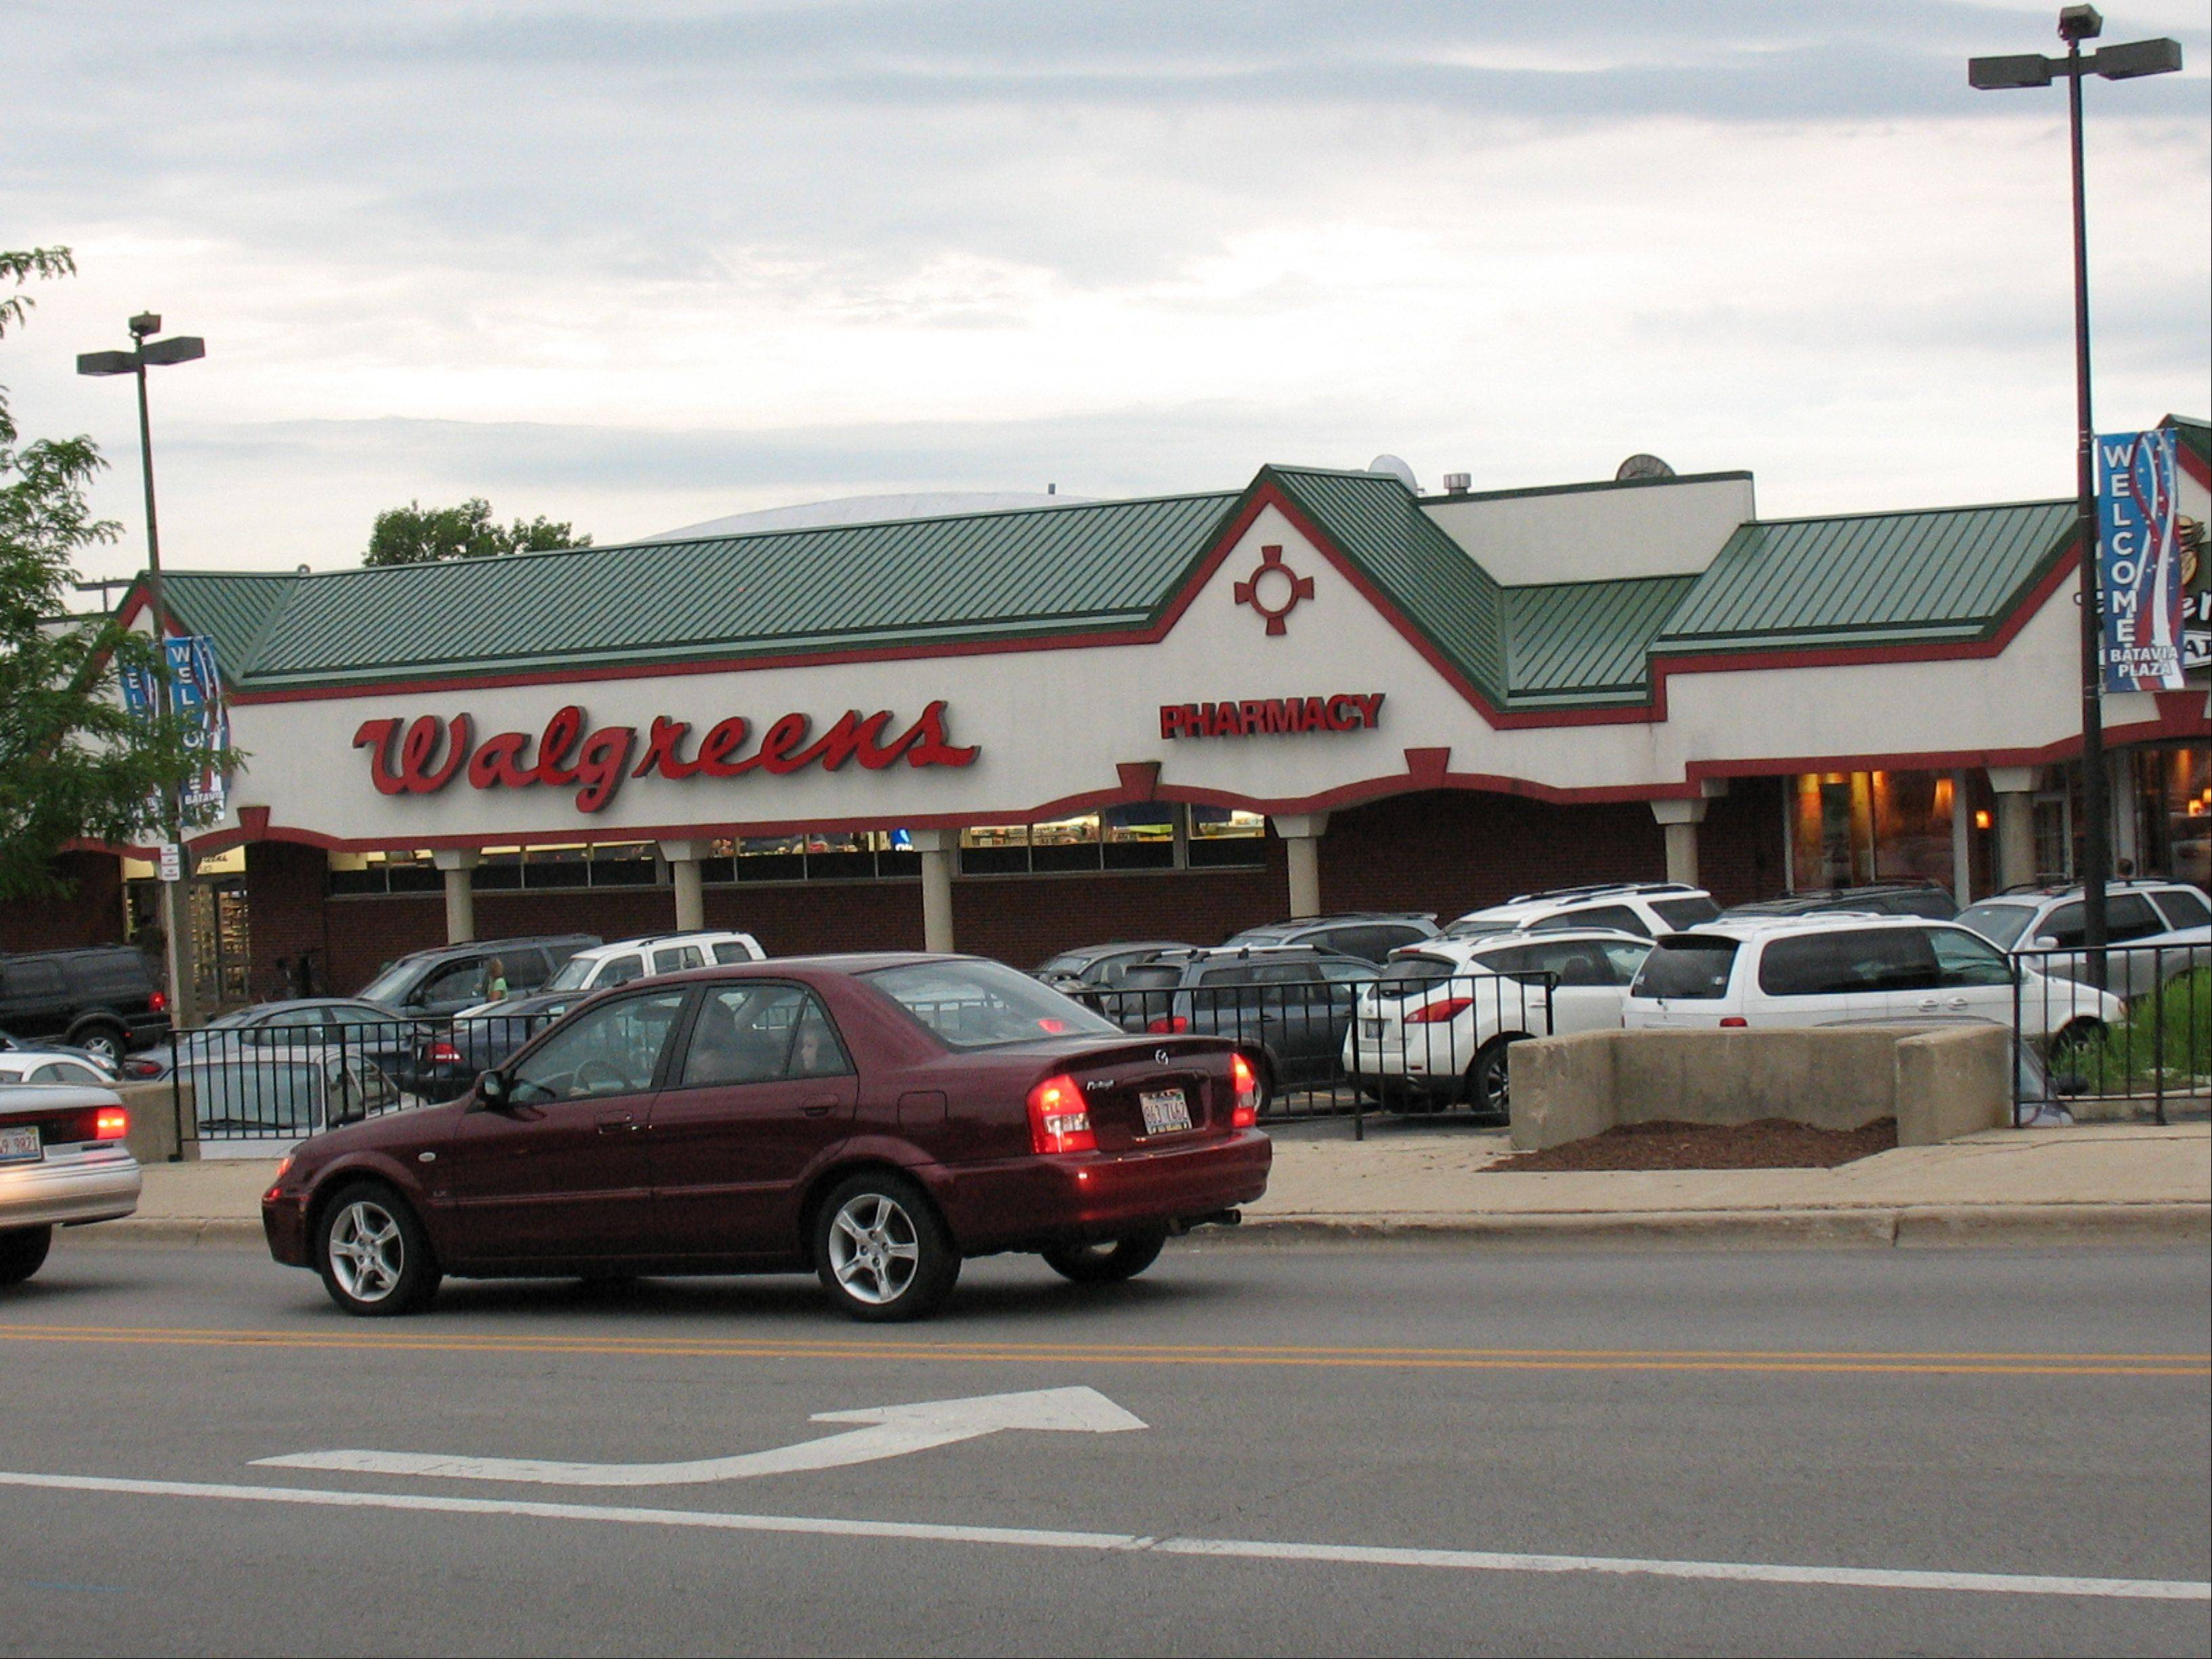 Walgreen Co.'s fourth quarter net income tumbled 55 percent compared with last year when a big gain inflated results for the nation's largest drugstore chain.